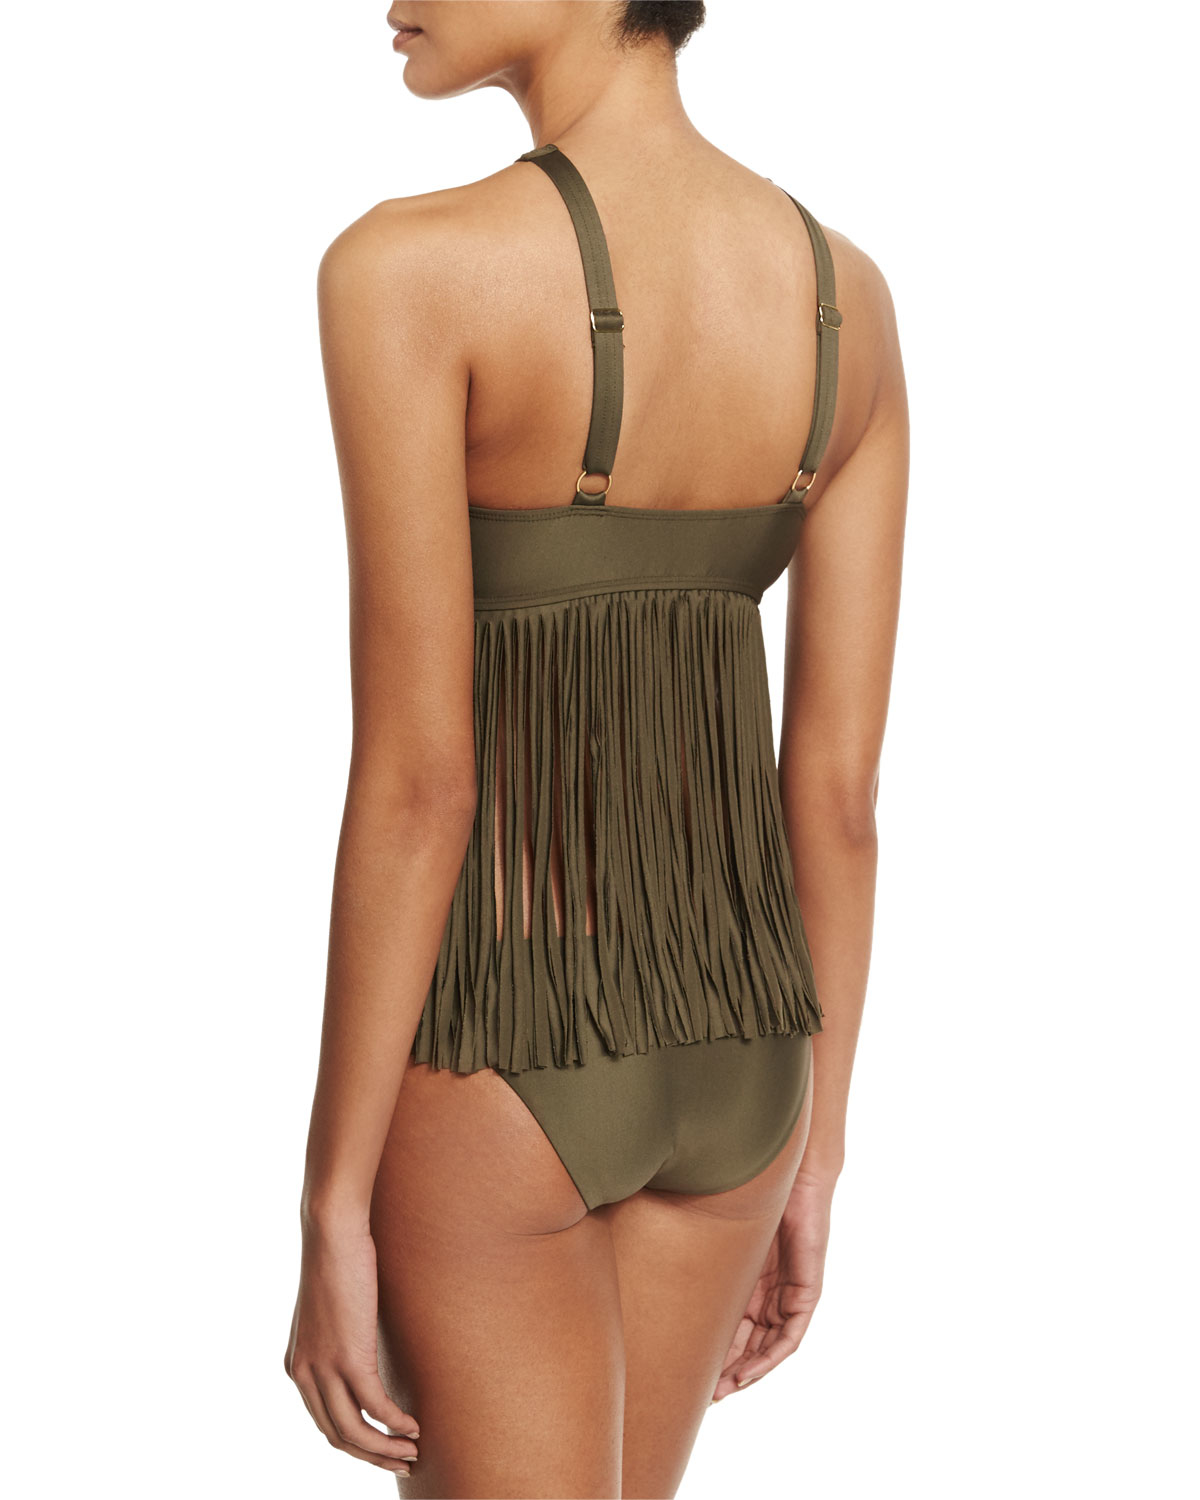 d1a74557b0809 Luxe by Lisa Vogel Fringe Benefits High-neck Tankini Swim Top in ...